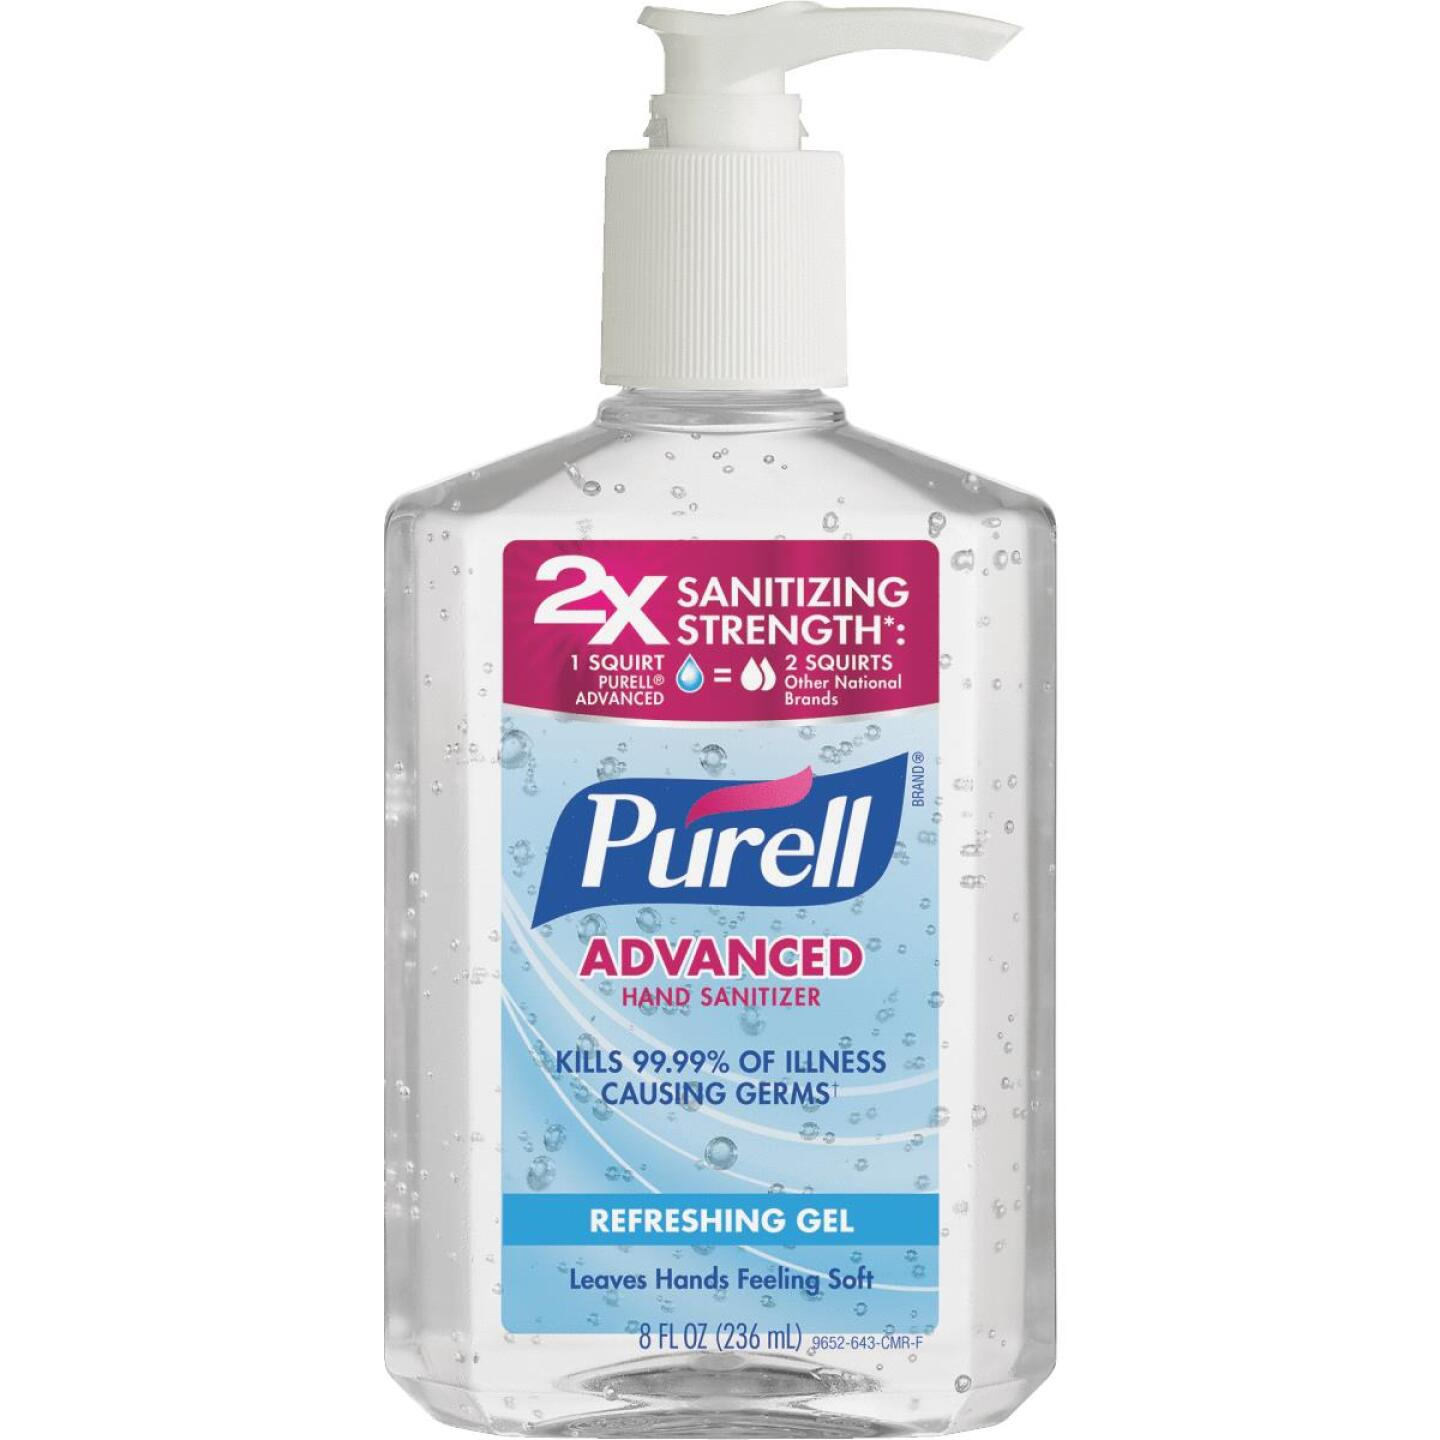 Purell Liquid, Pump Bottle 8 Oz. Hand Sanitizer Image 1